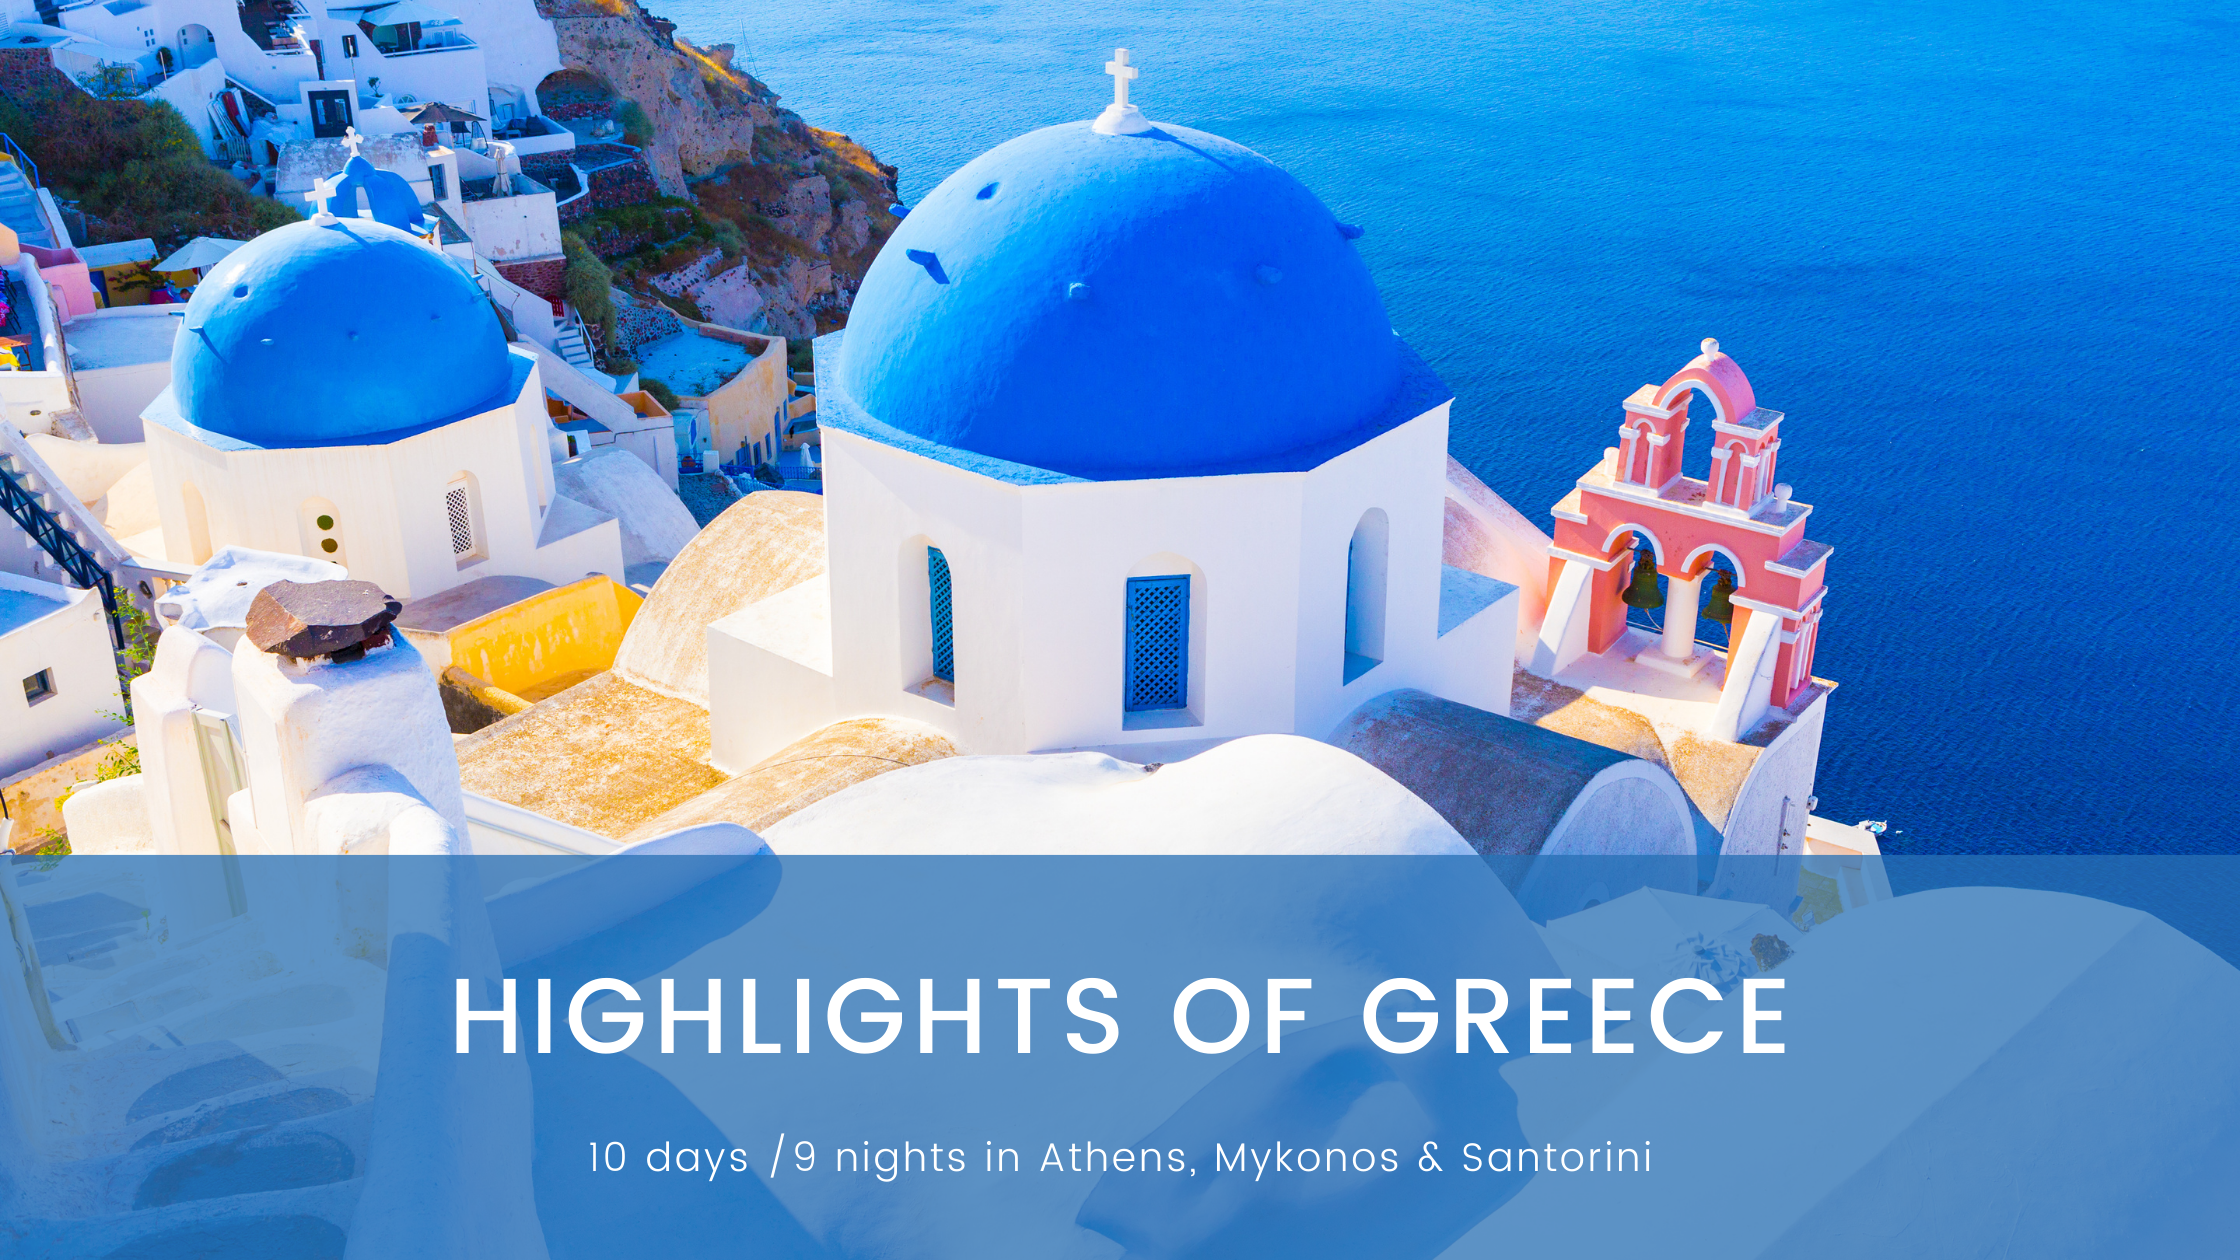 Highlights of Greece